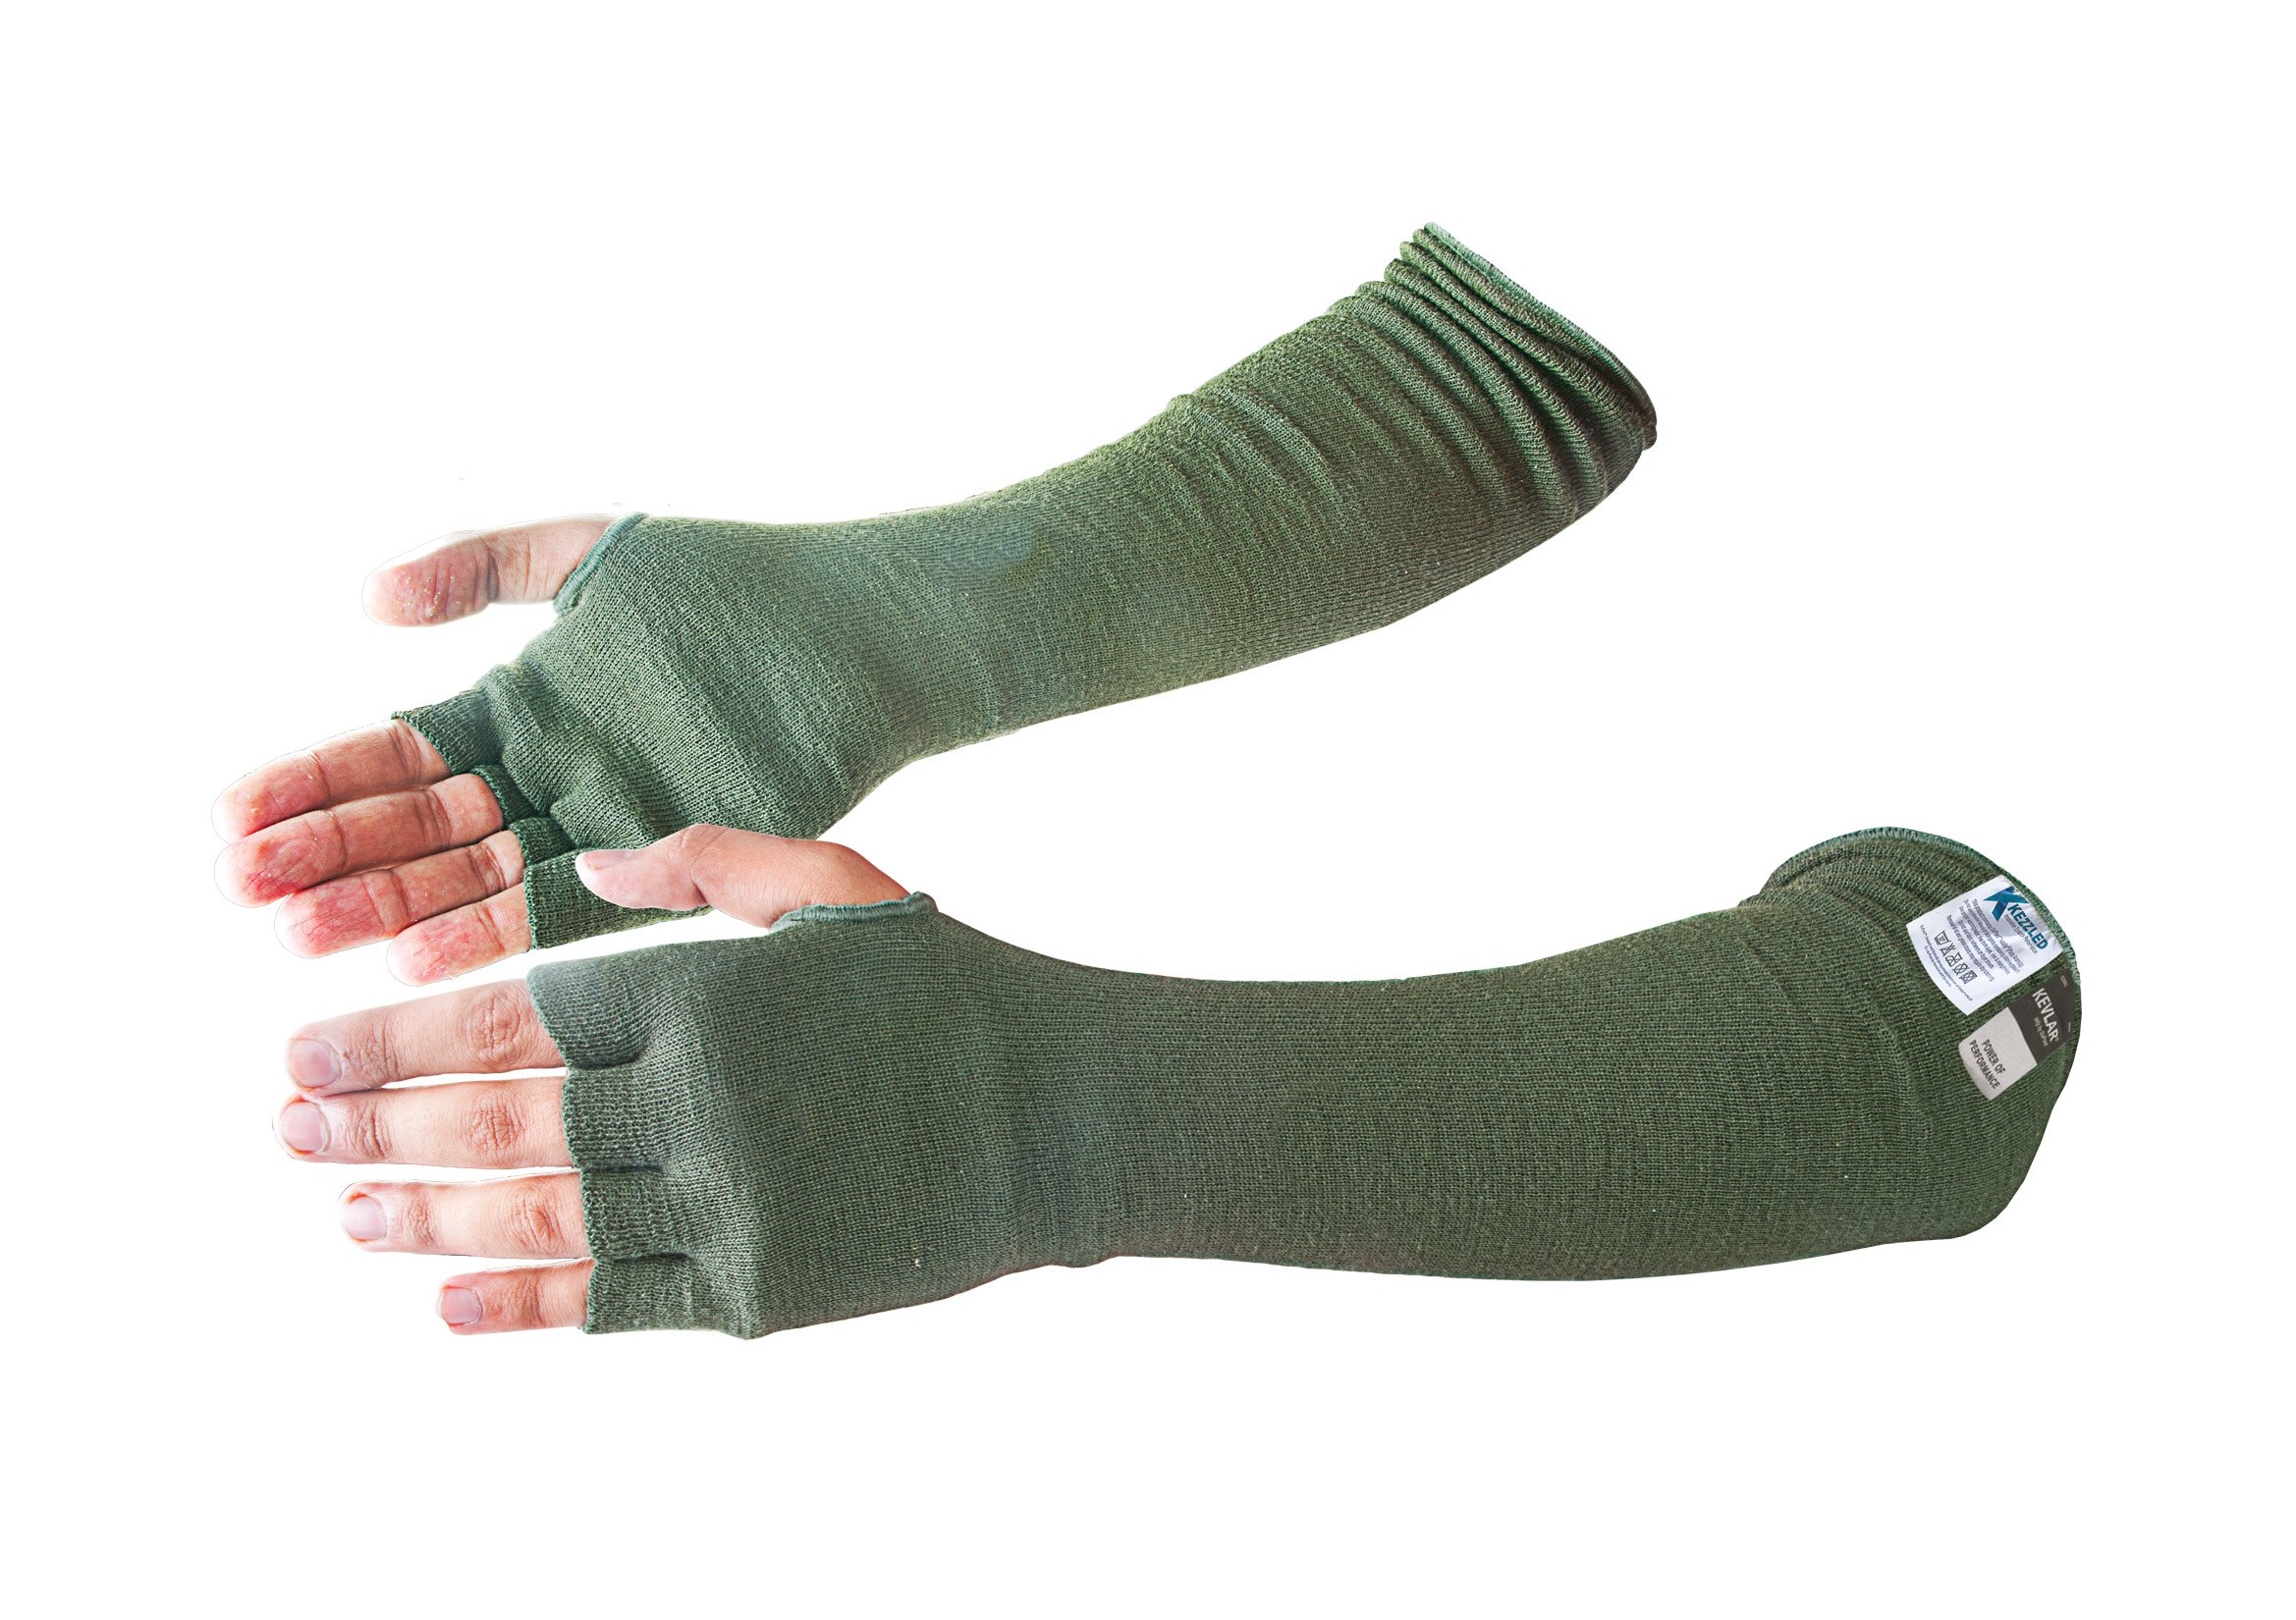 Kevlar Cut & Heat Resistant Designer Arm Sleeves with Finger Openings - Sage Green 18 inches by Kezzled